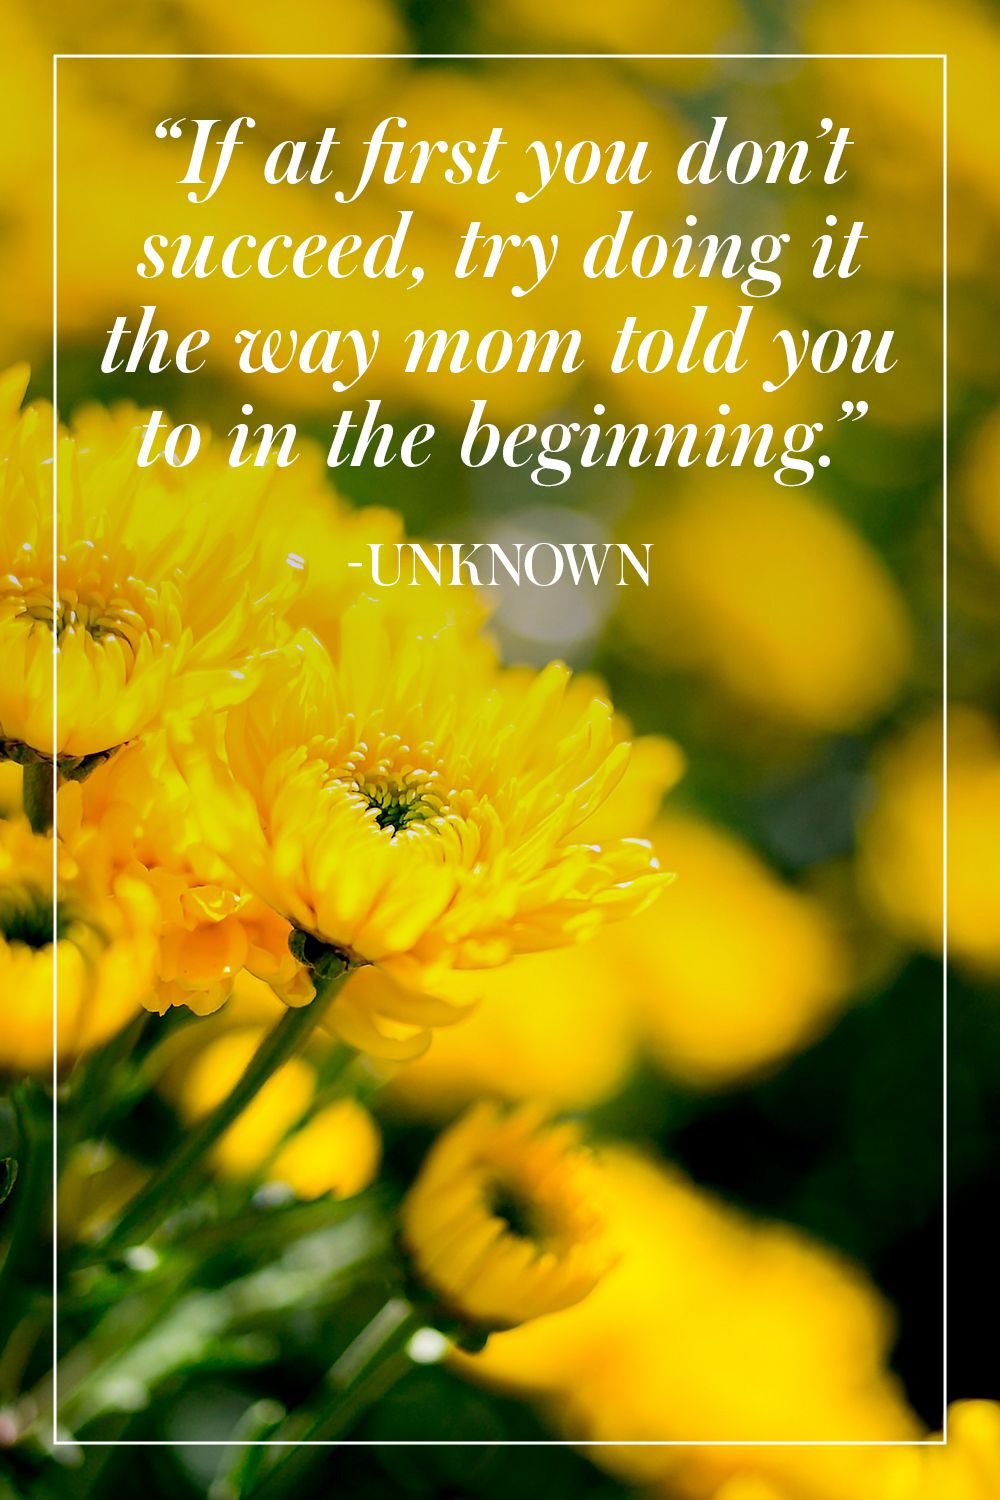 """""""If at first you don't succeed, try doing it the way mom told you to in the beginning."""" - Unknown"""